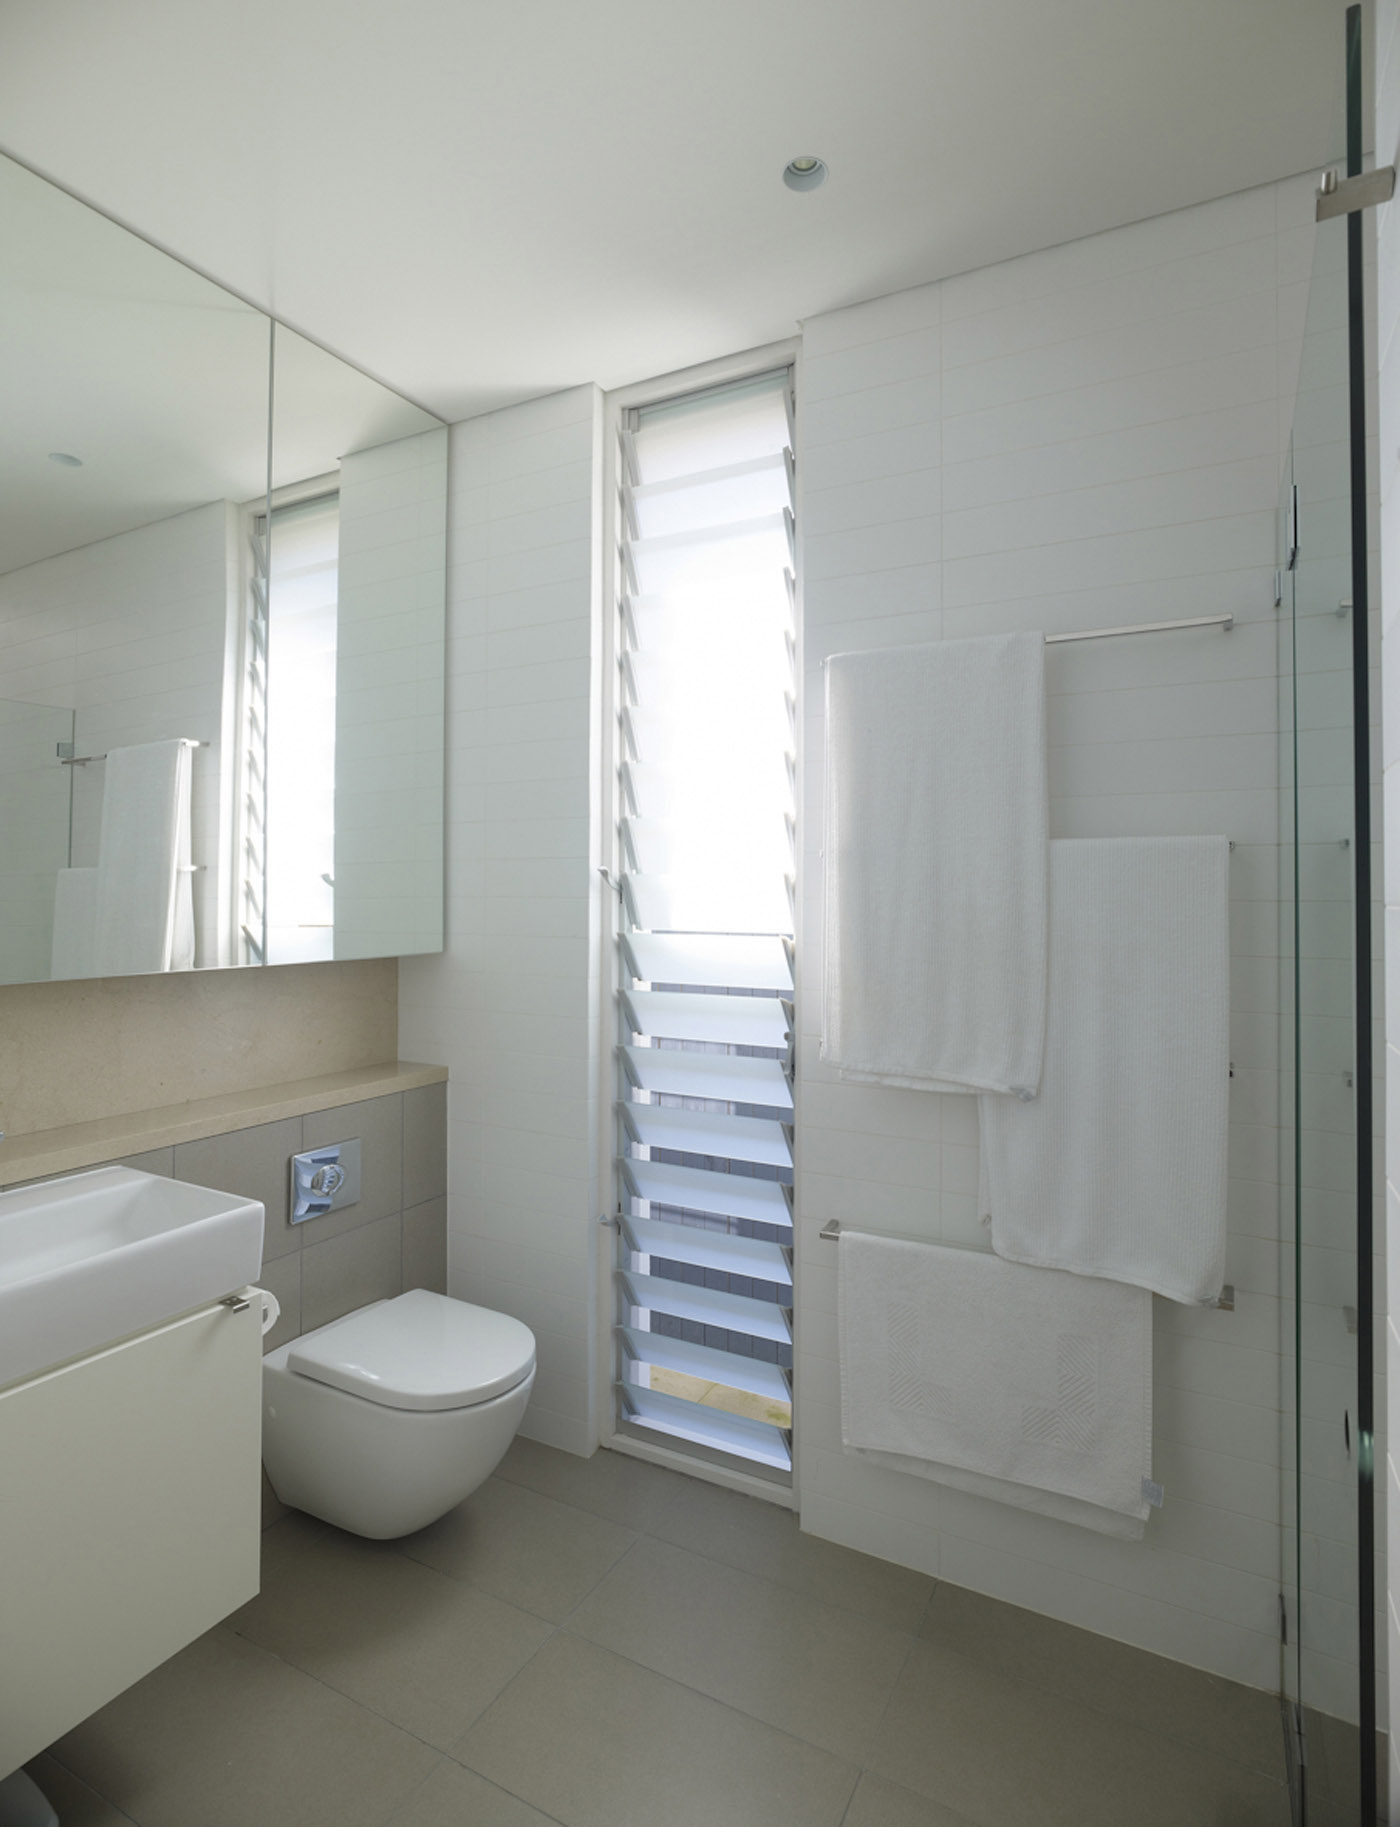 Lambert House by Sydney award winning residential architecture office Sam Crawford Architects. Light brown and white tiled bathroom.